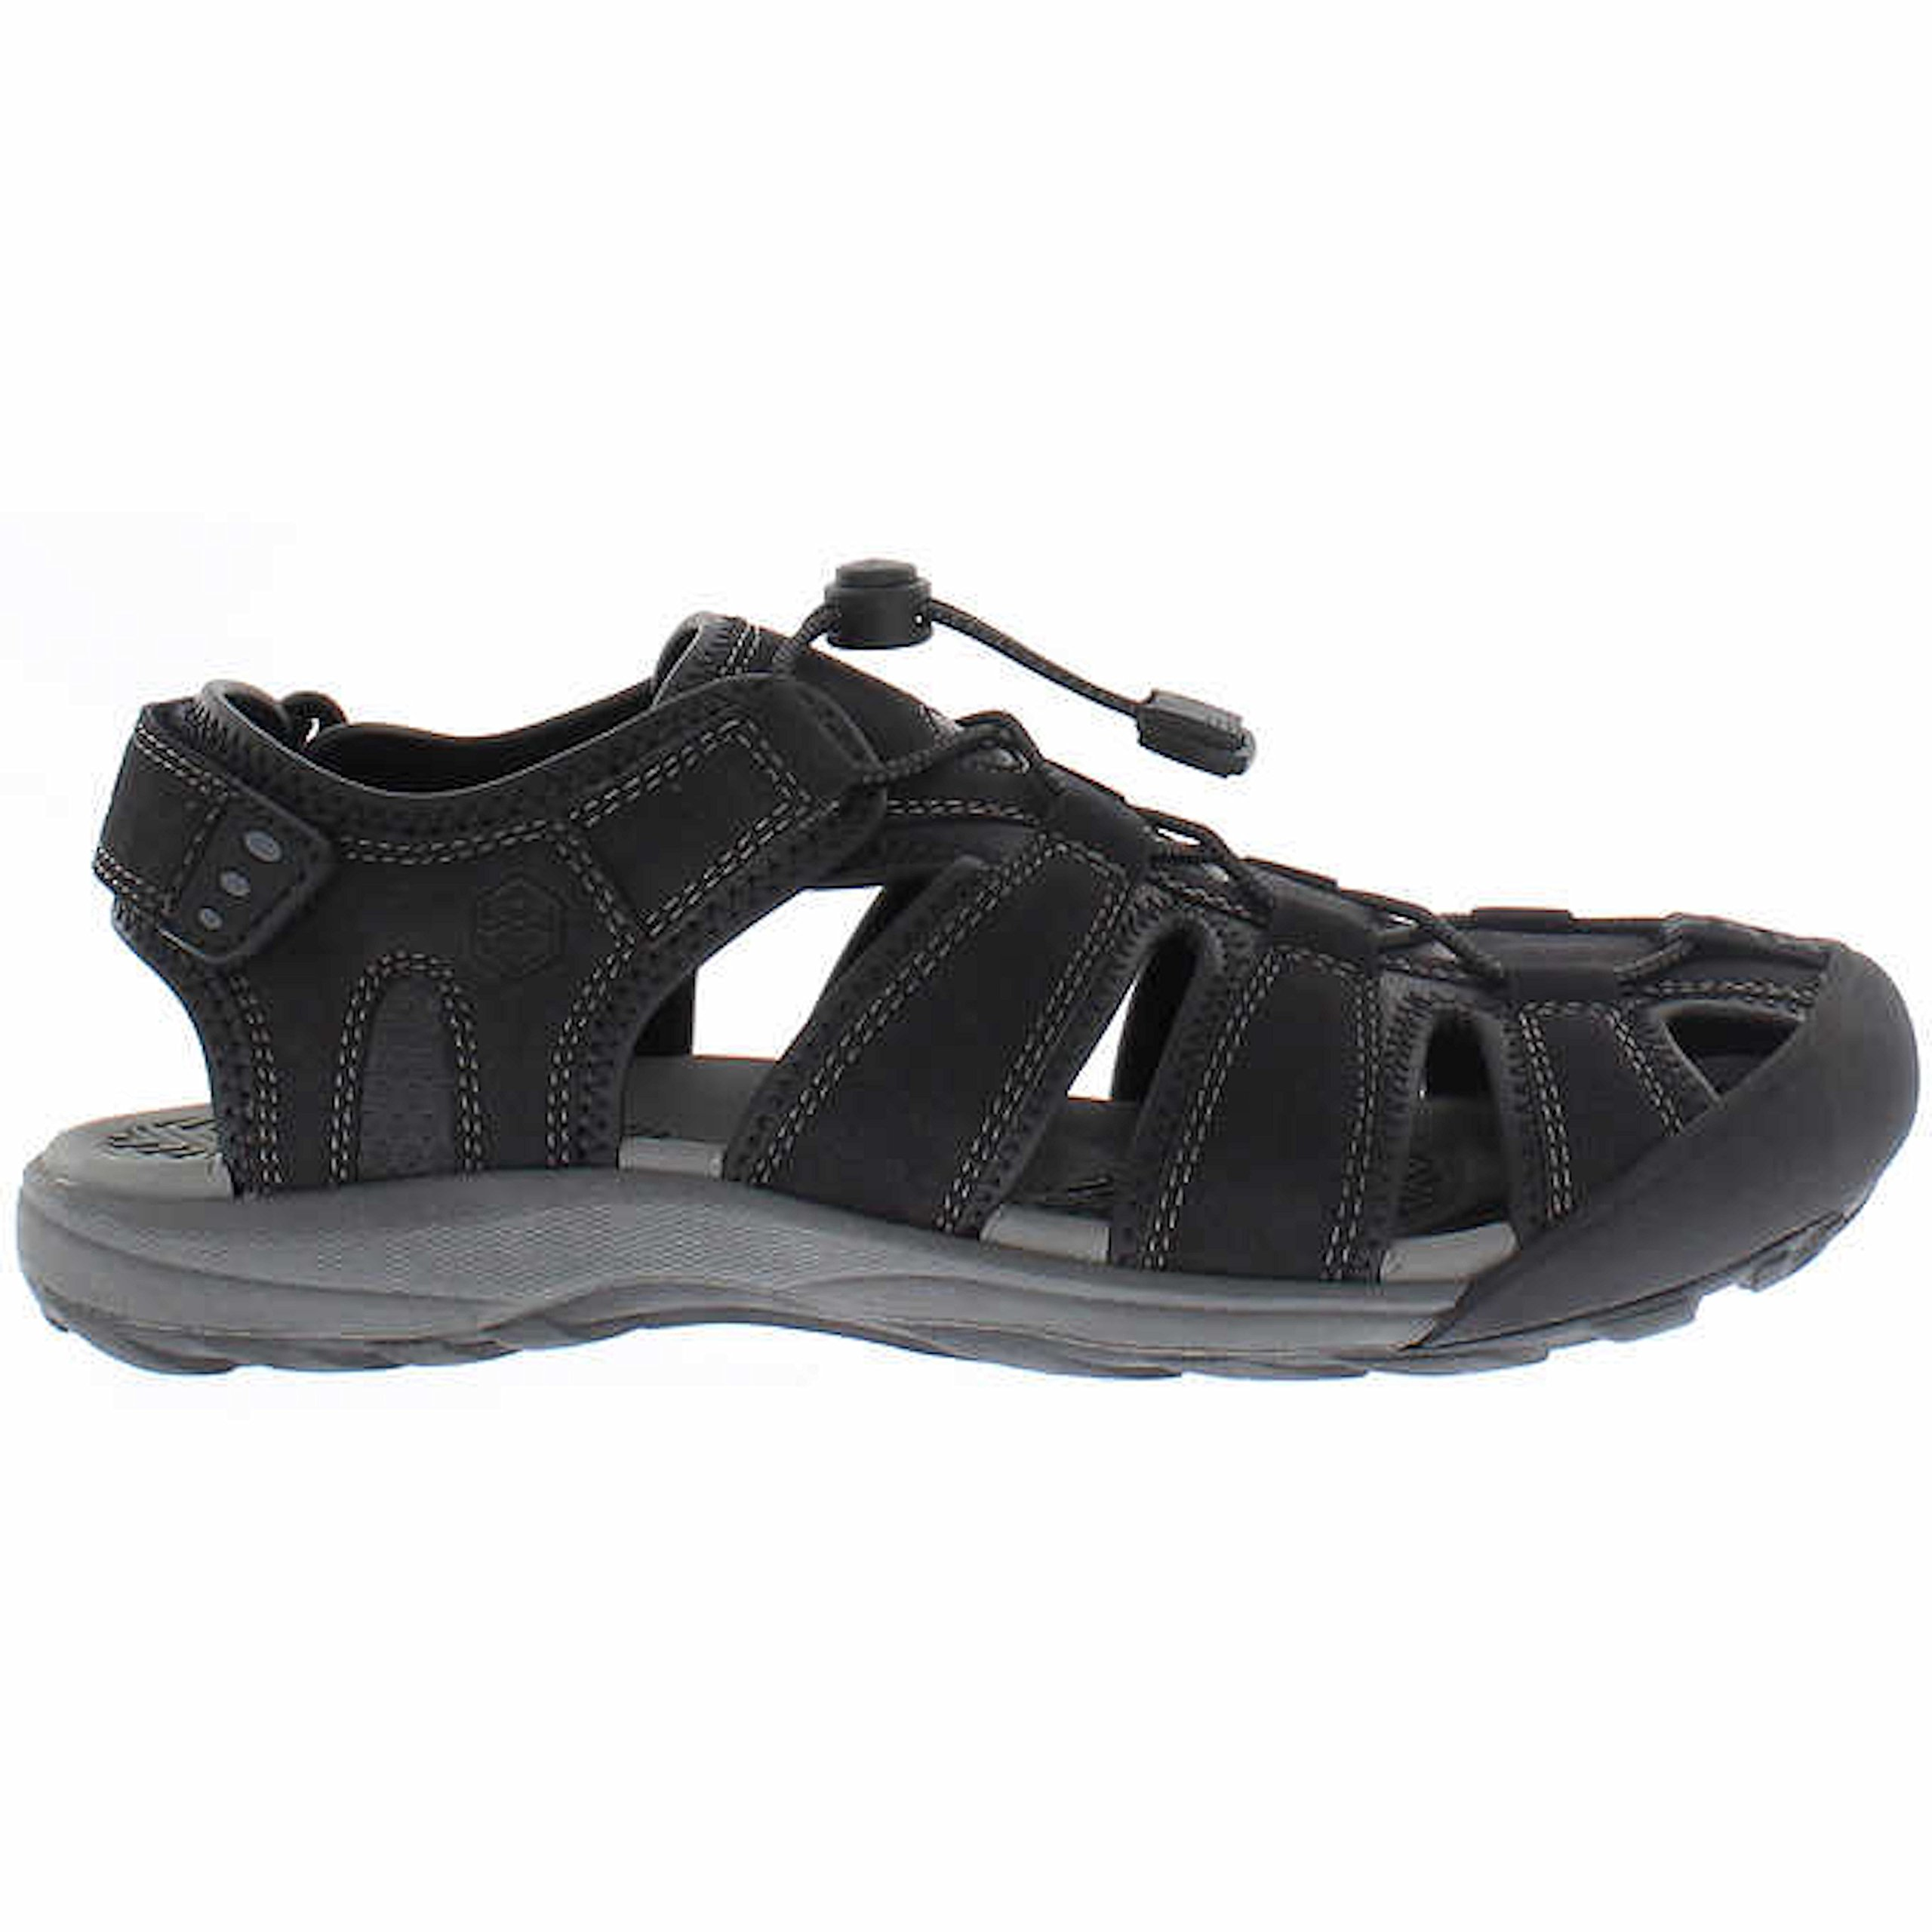 b0b910fbdc67 Khombu Sandal Men s Travis Active Sandal   Sandals   Clothing